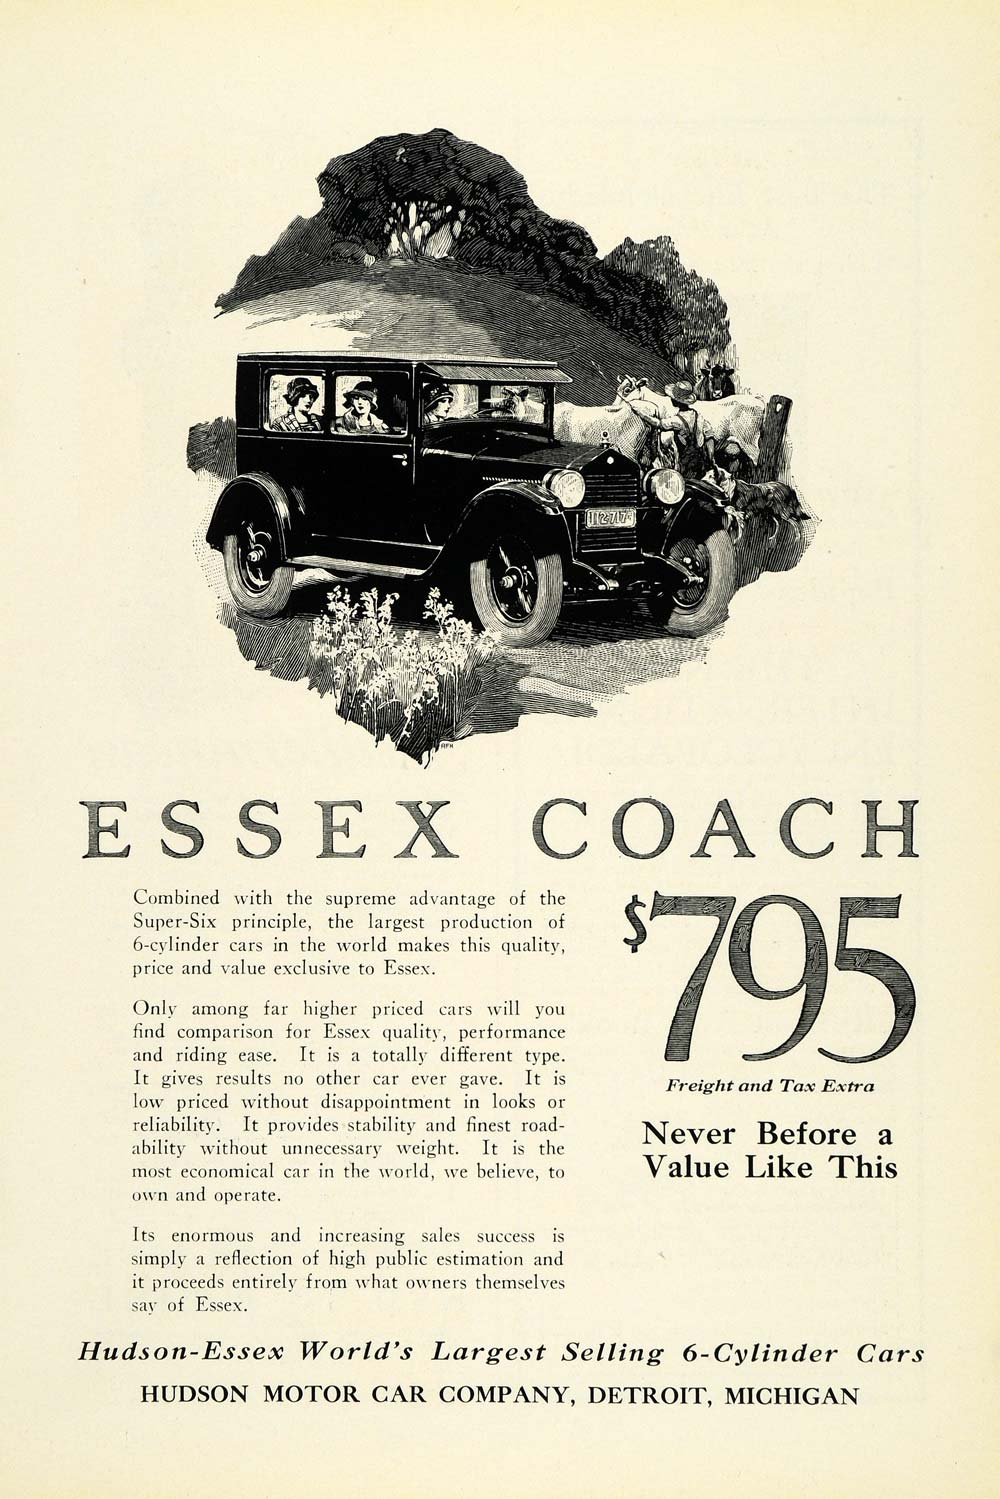 1925 Ad Hudson Motor Car Co Countryside Cattle Rough Collie Dog Vintage Car NGM1